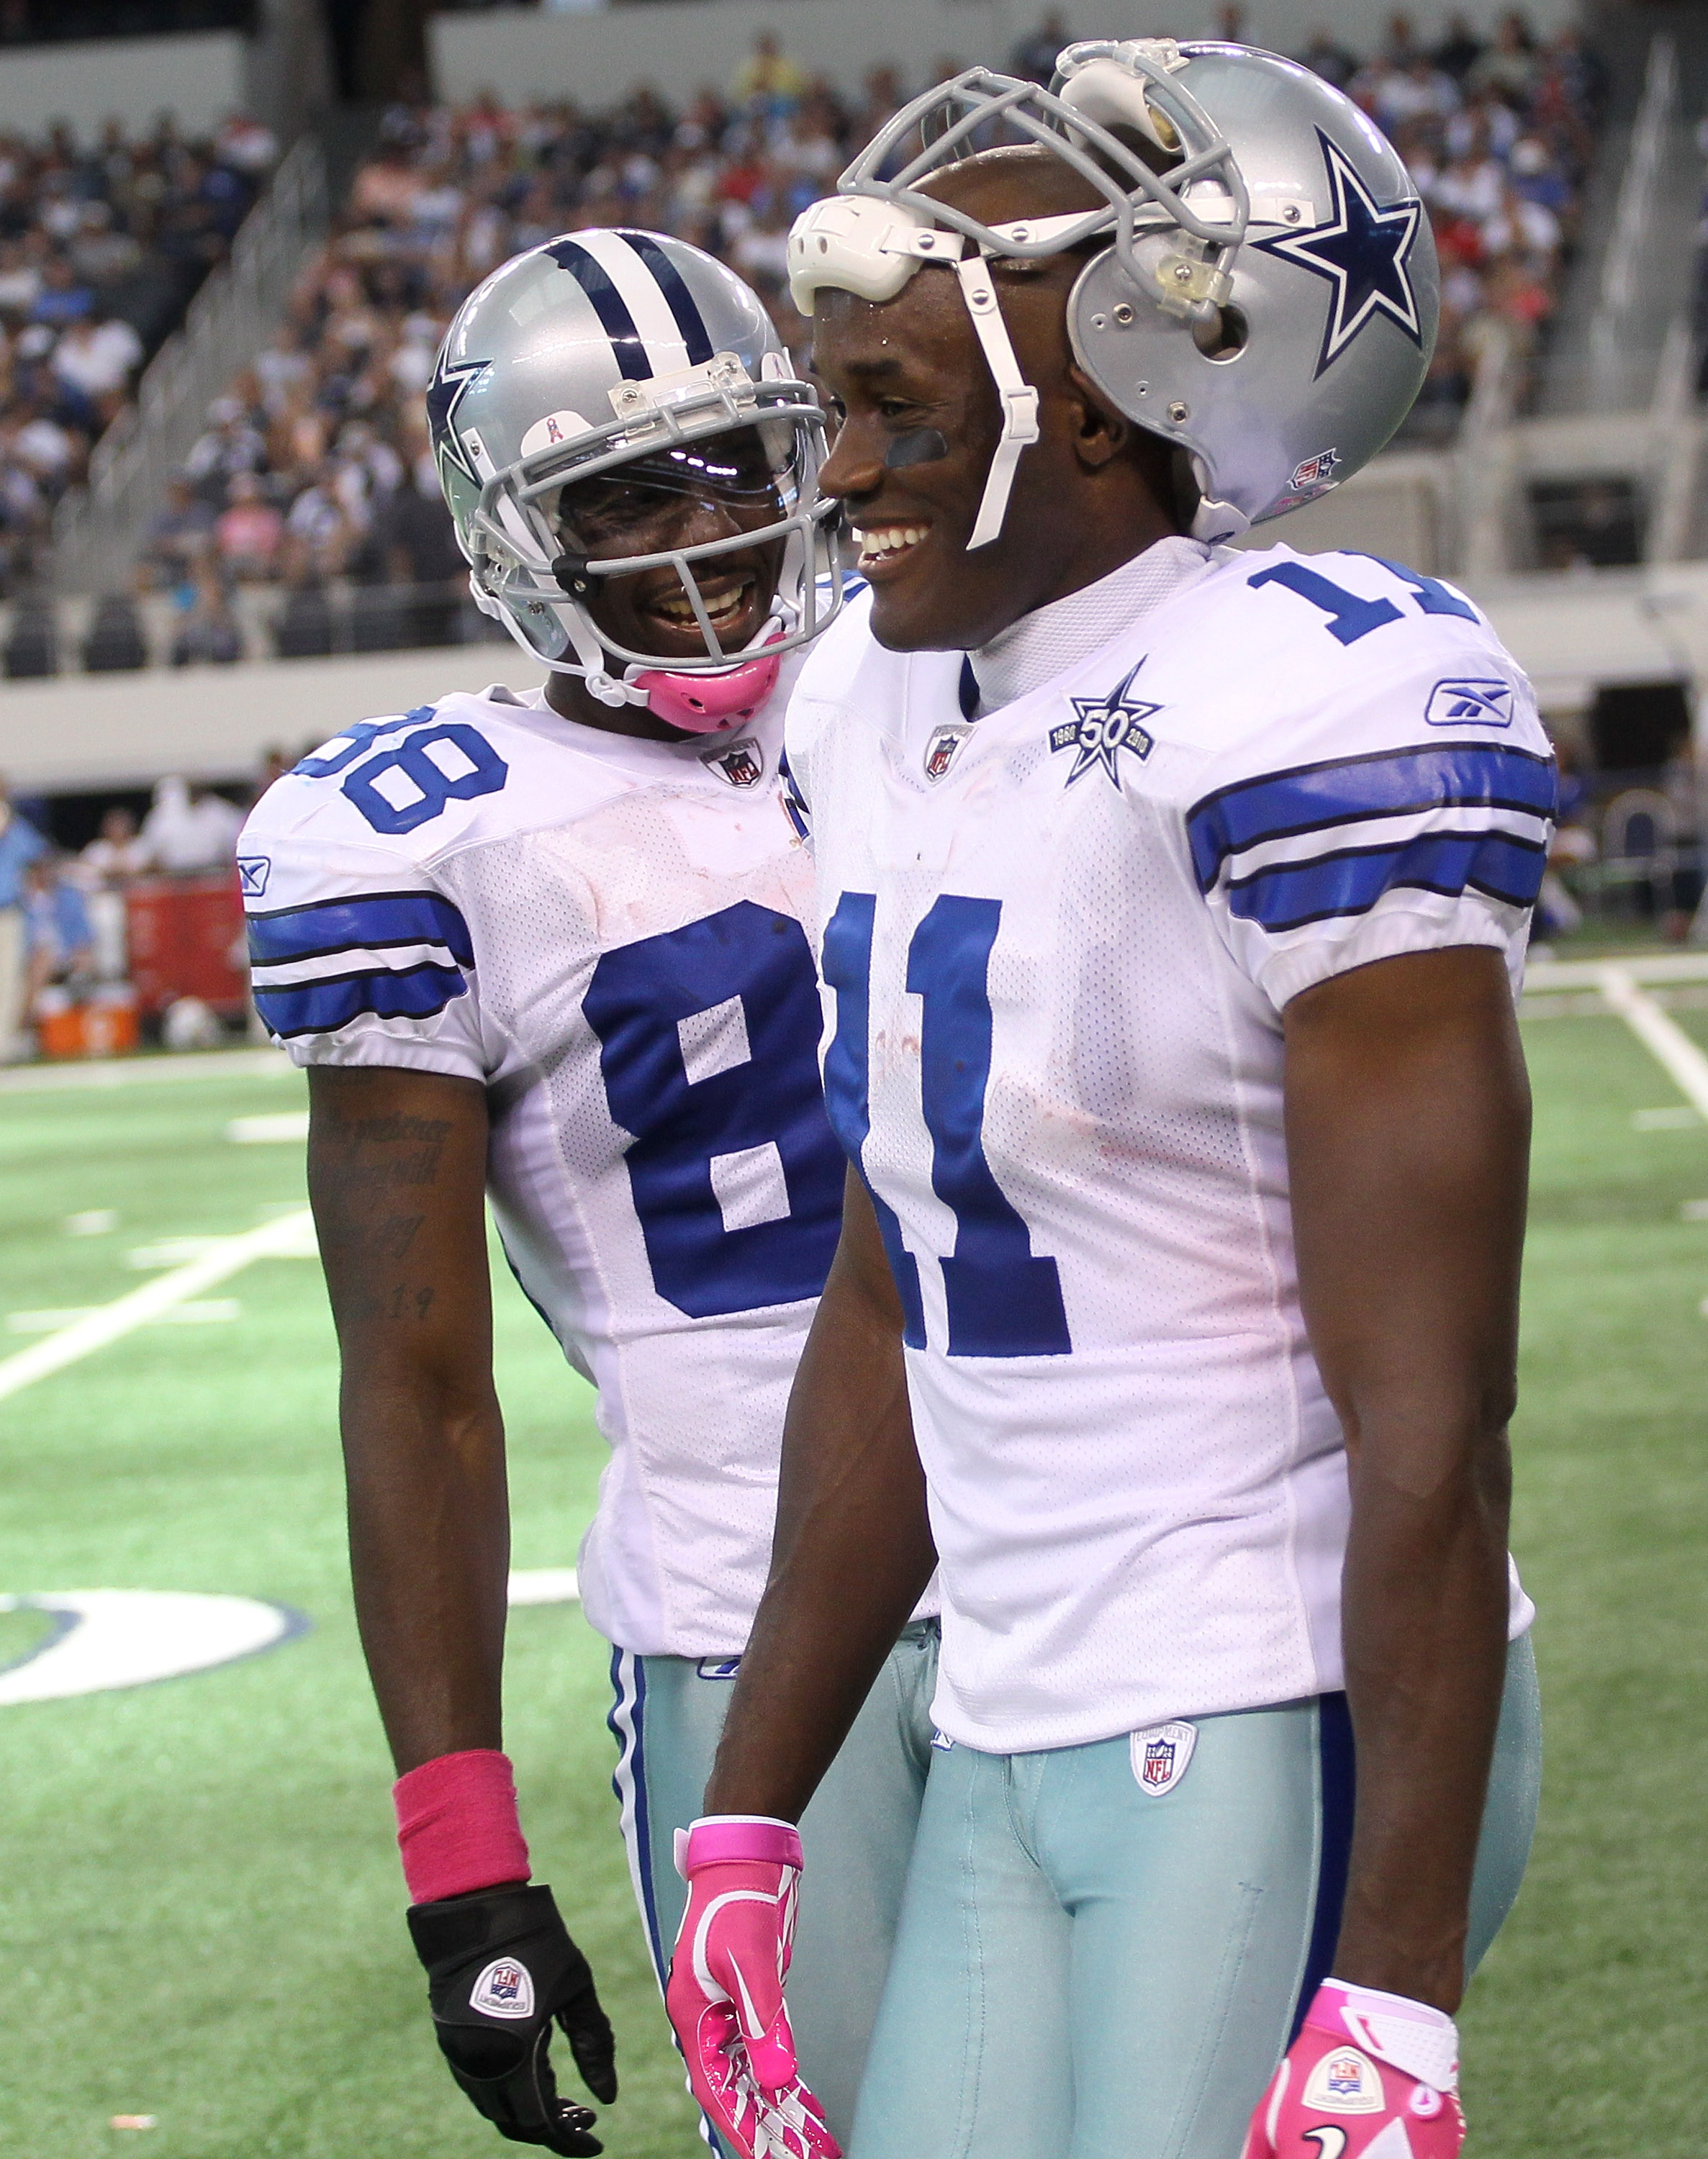 ARLINGTON, TX - OCTOBER 10:  Wide receivers Roy Williams #11 and Dez Bryant #88 of the Dallas Cowboys laugh during the game against the Tennessee Titans at Cowboys Stadium on October 10, 2010 in Arlington, Texas. The Titans won 34-27.  (Photo by Stephen D